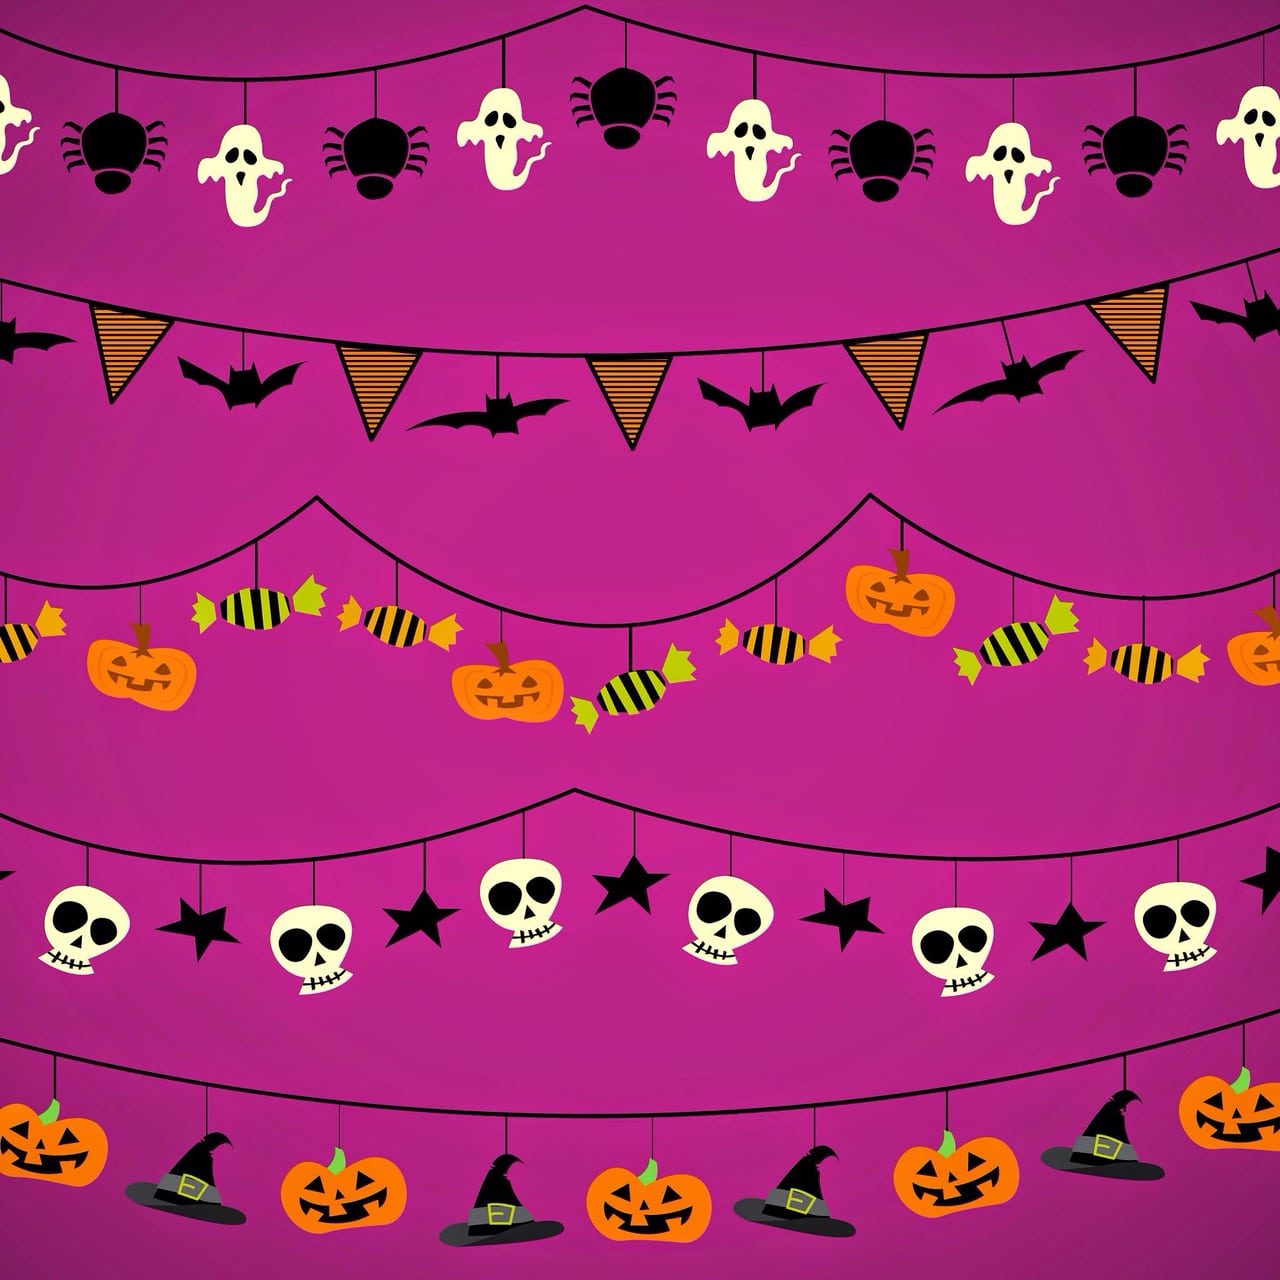 Halloween Bats Background Tumblr